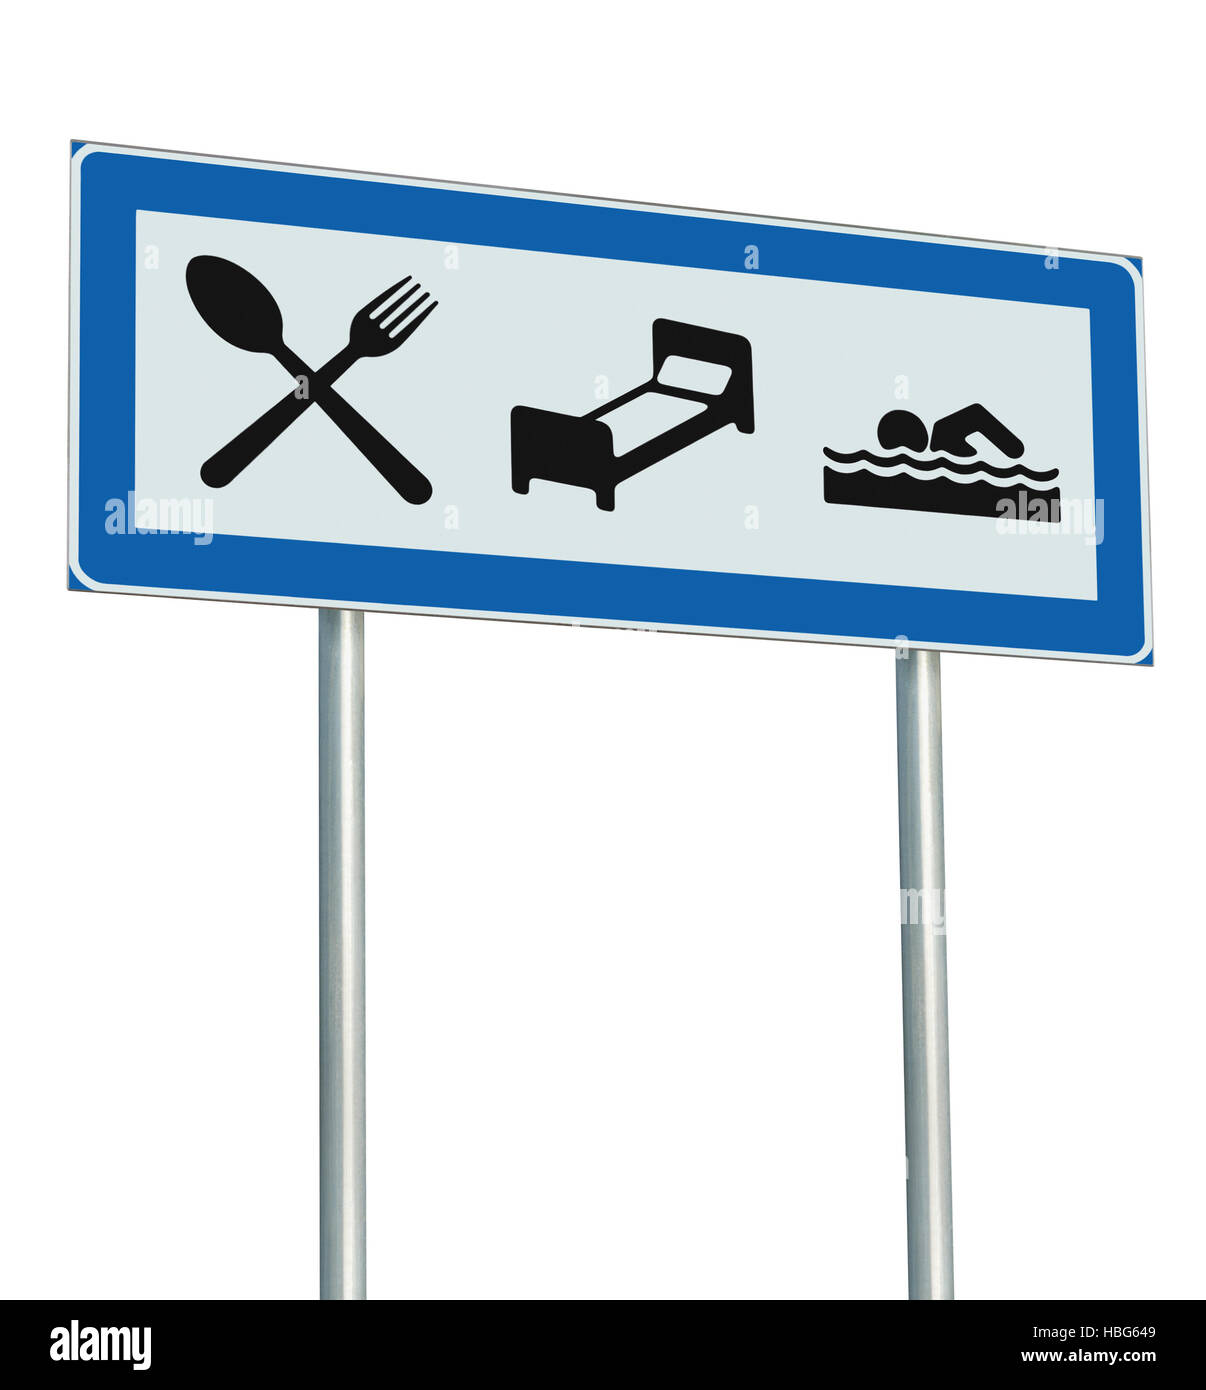 Parking Lot Road Sign Isolated, Restaurant, Hotel Motel, Swimming Pool Icons, Roadside Signage Pole Post, Blue, - Stock Image